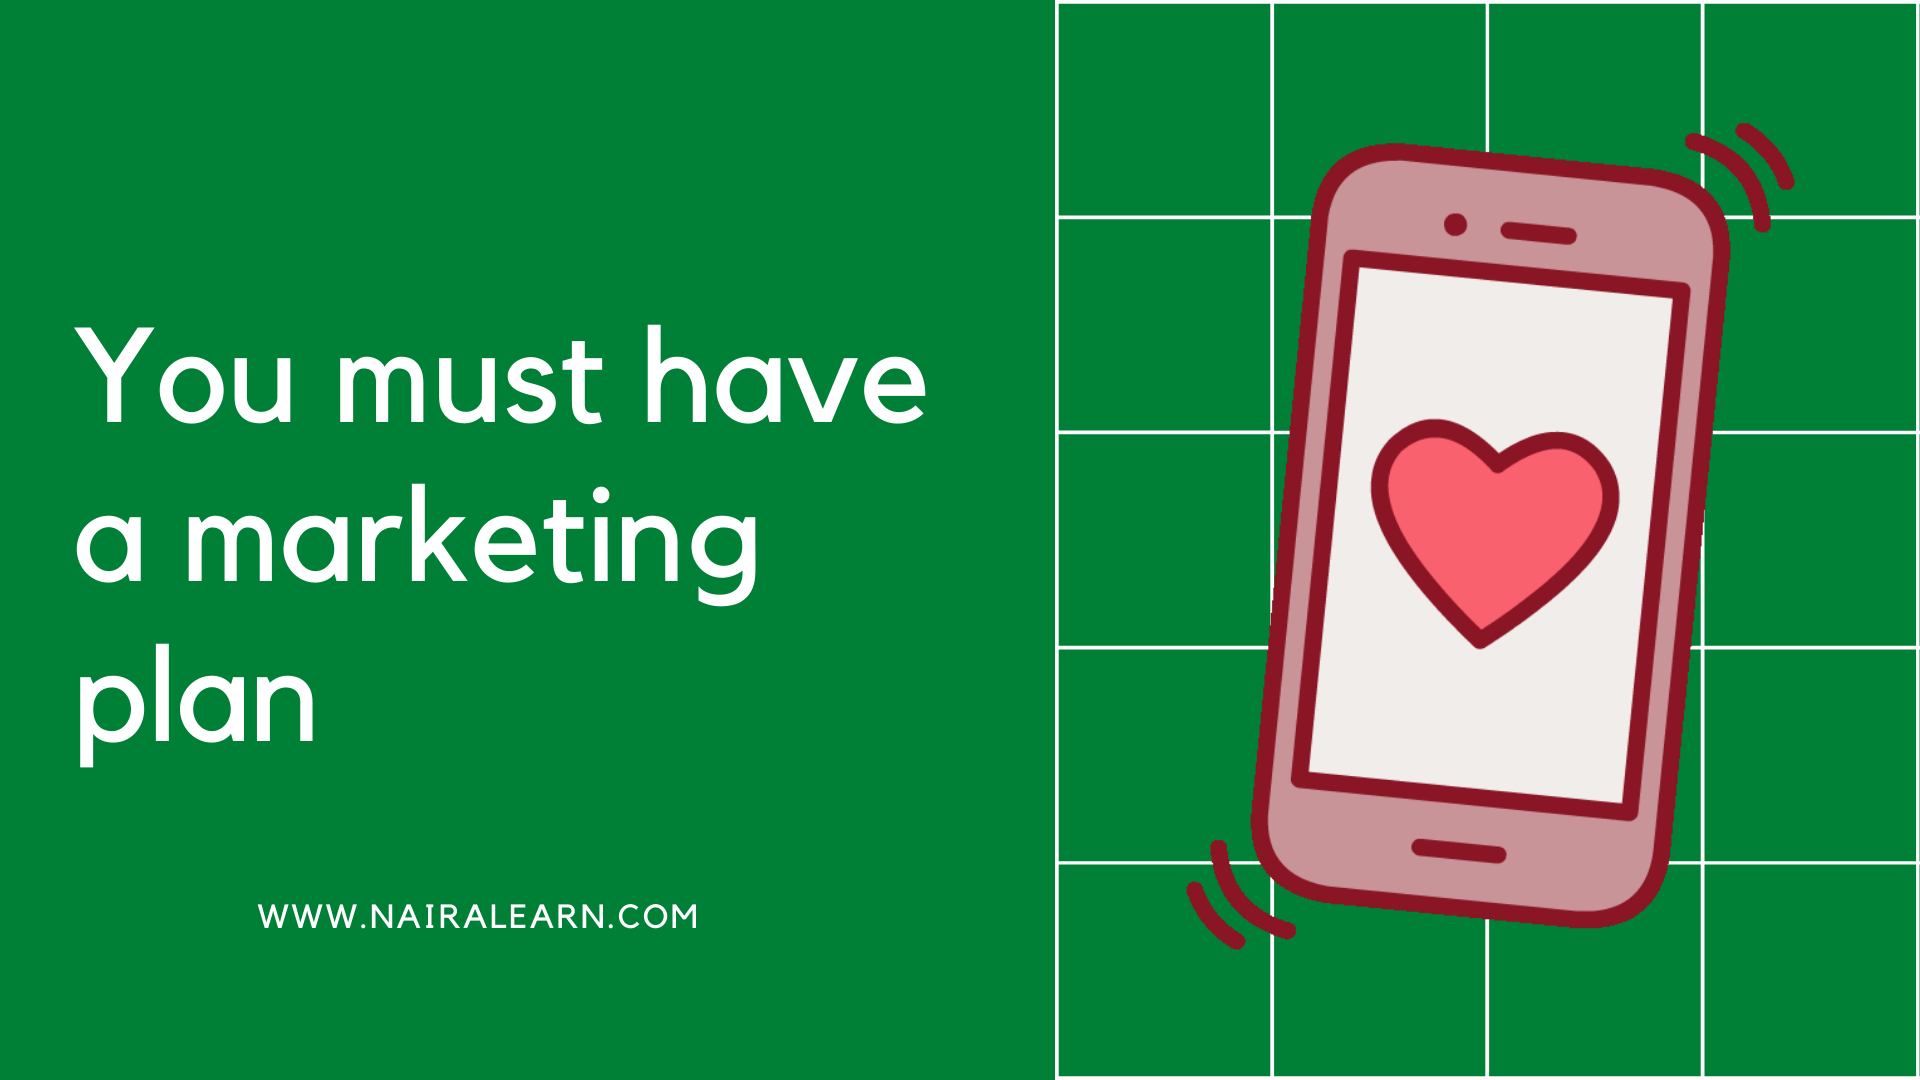 You must have a marketing plan